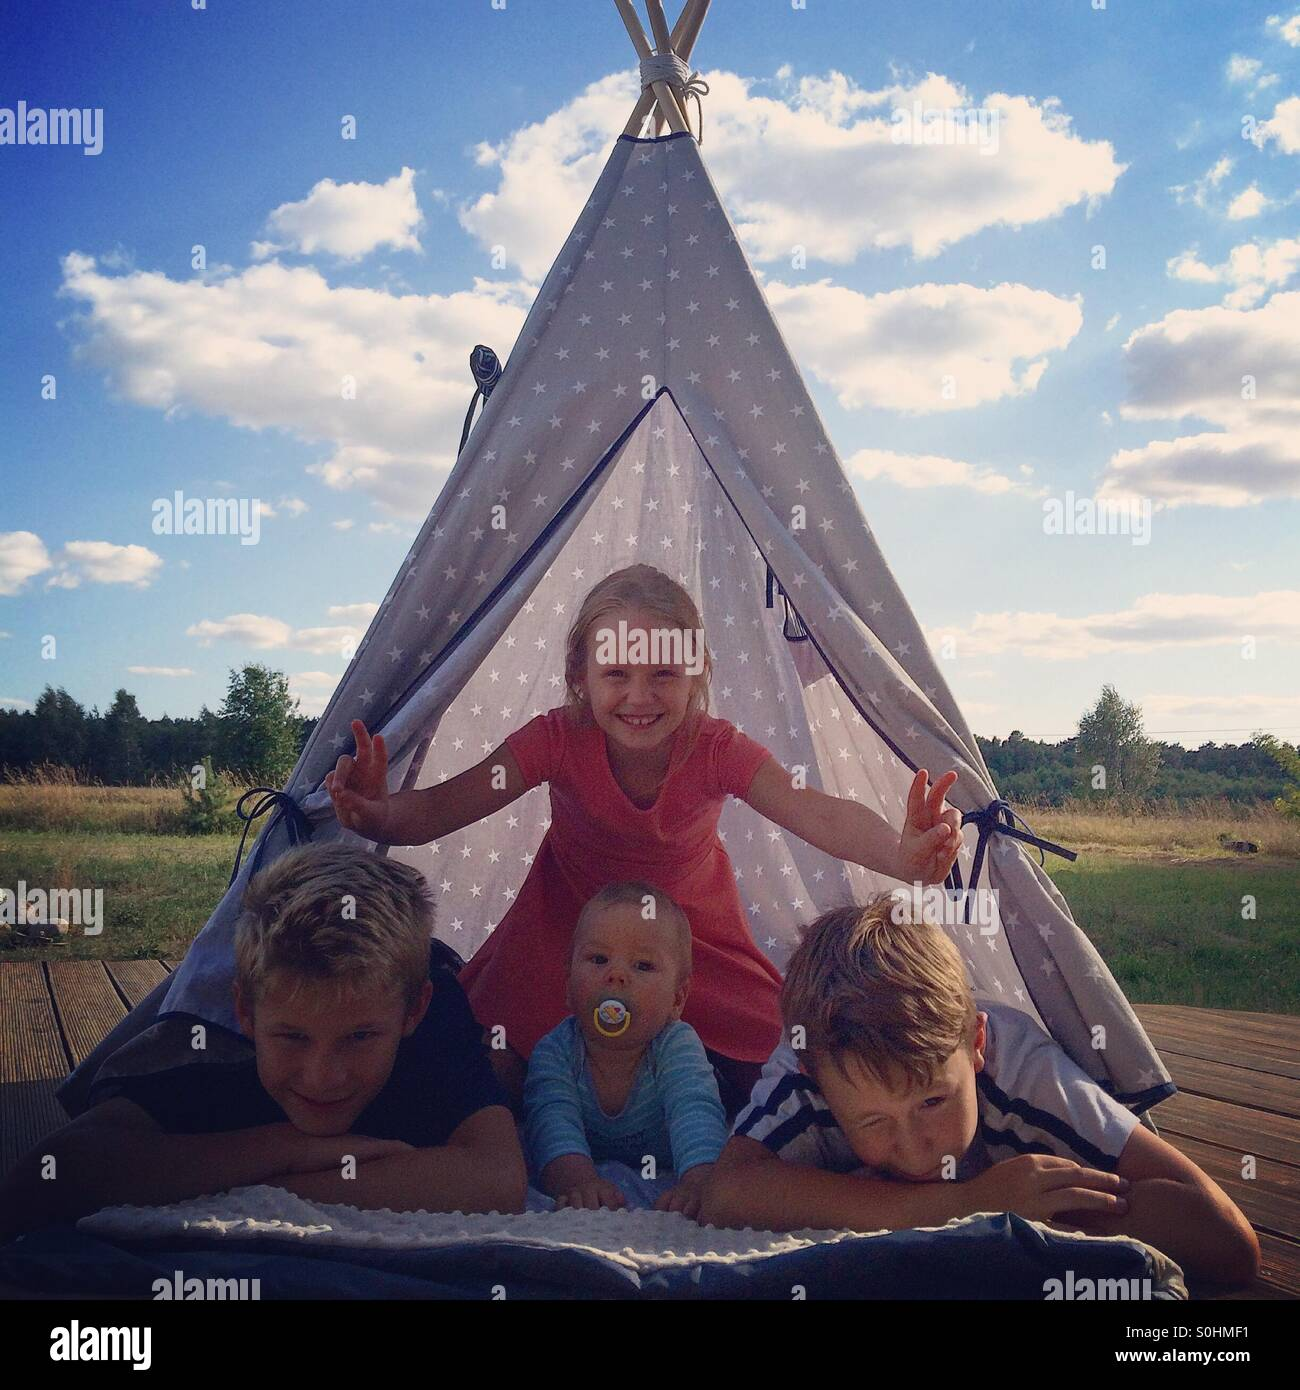 Four siblings together in teepee on hot summer day - Stock Image